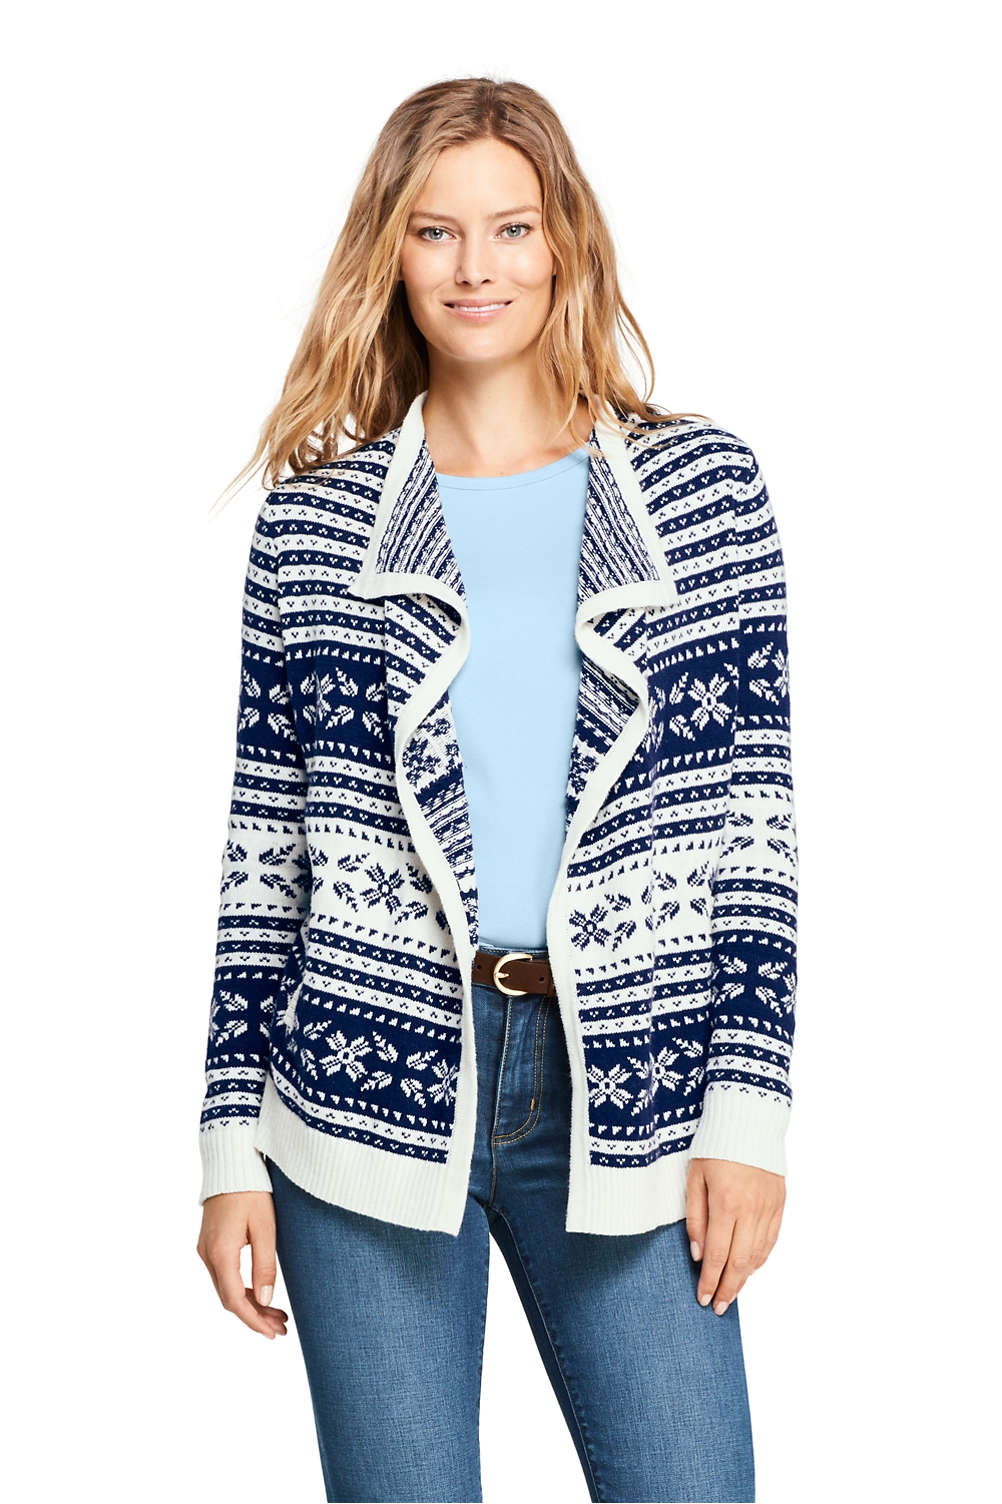 0559071f9df1 Women s Fair Isle Lofty Waterfall Cardigan Sweater from Lands  End